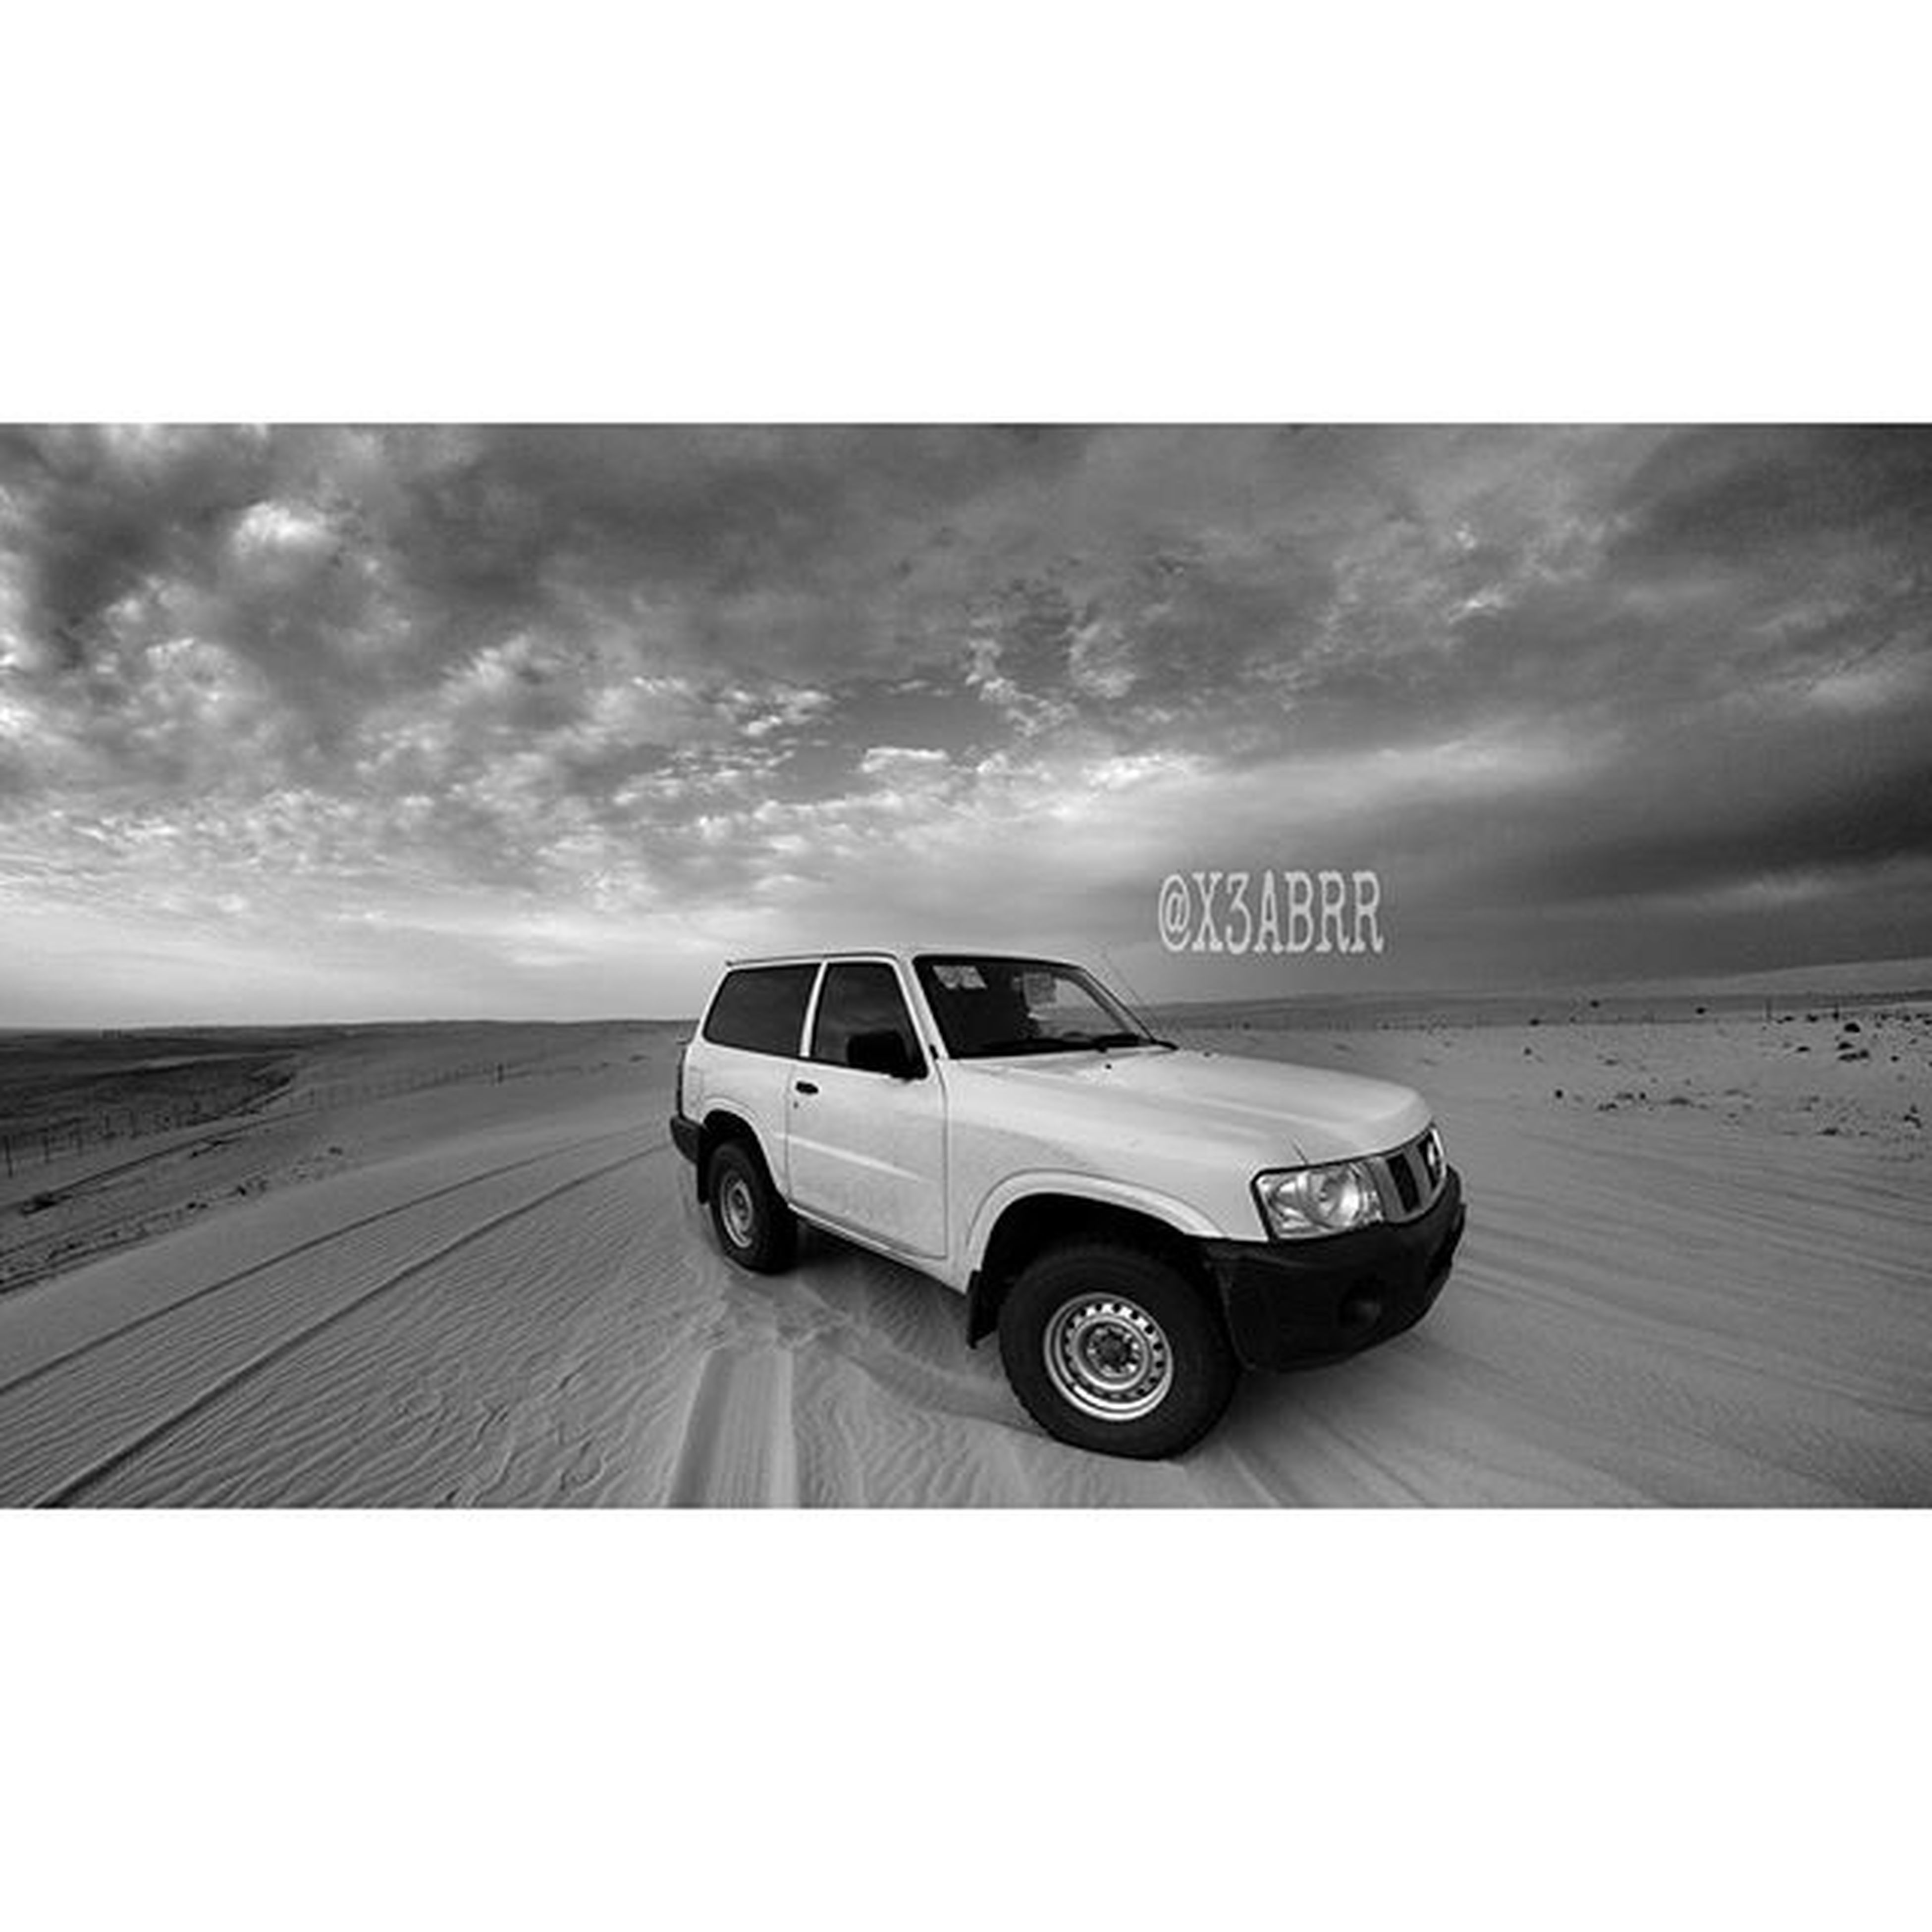 transportation, sky, transfer print, mode of transport, auto post production filter, cloud - sky, land vehicle, car, cloud, cloudy, travel, road, airplane, outdoors, on the move, air vehicle, landscape, day, sand, airport